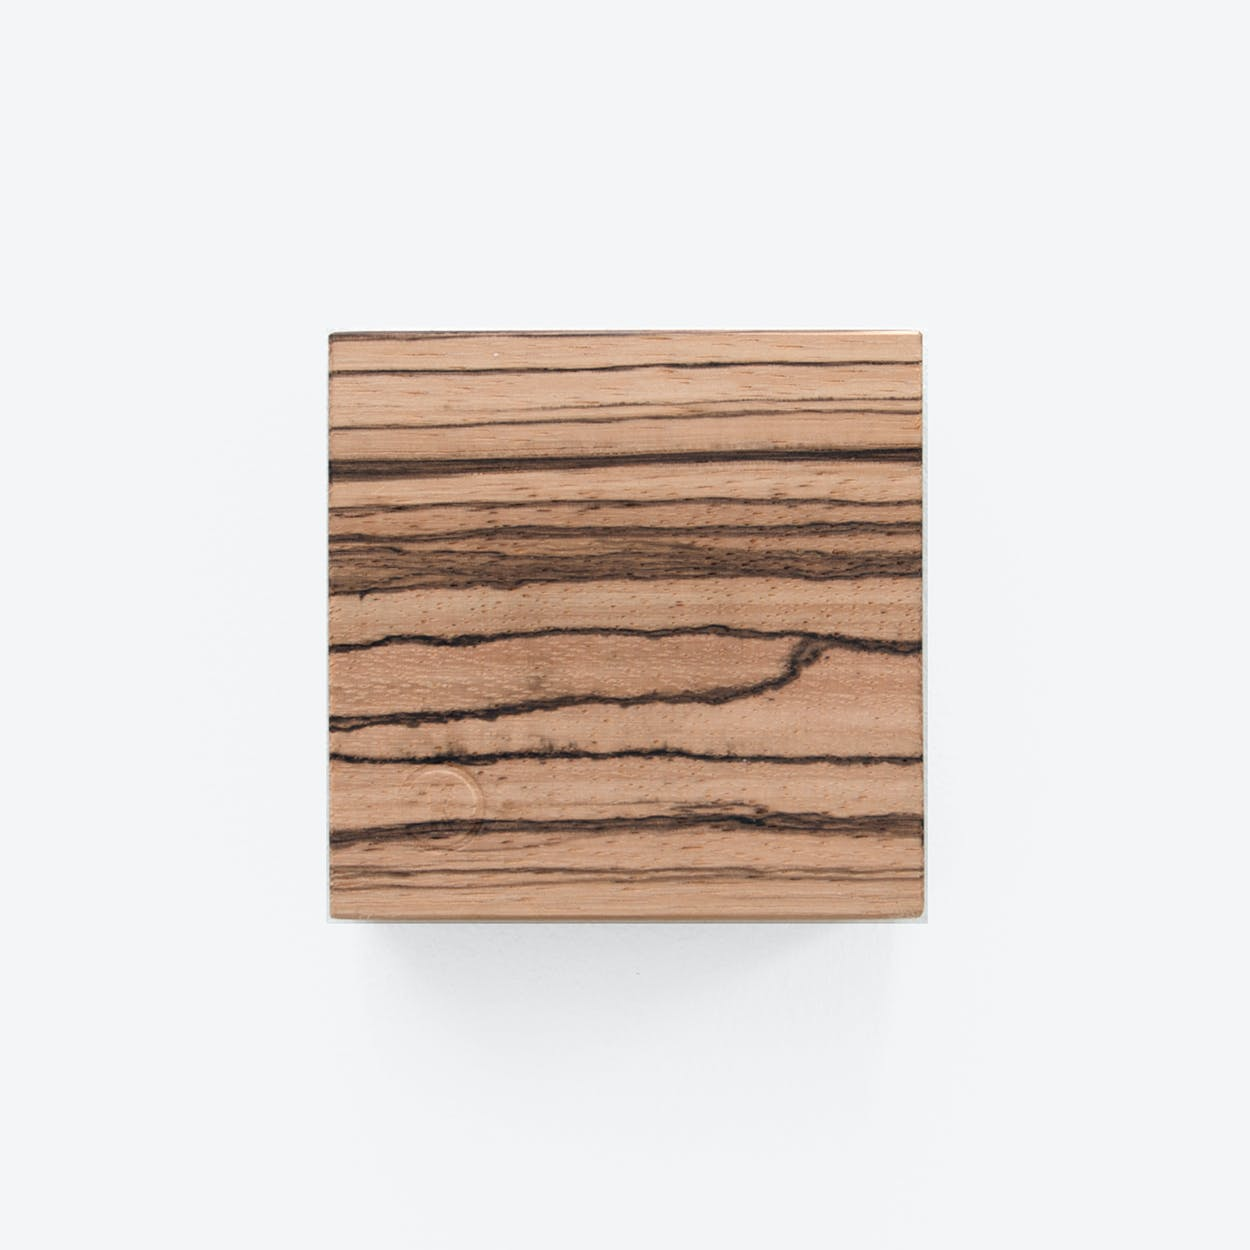 Traktor | Magnetic Wood Block in Zebrano